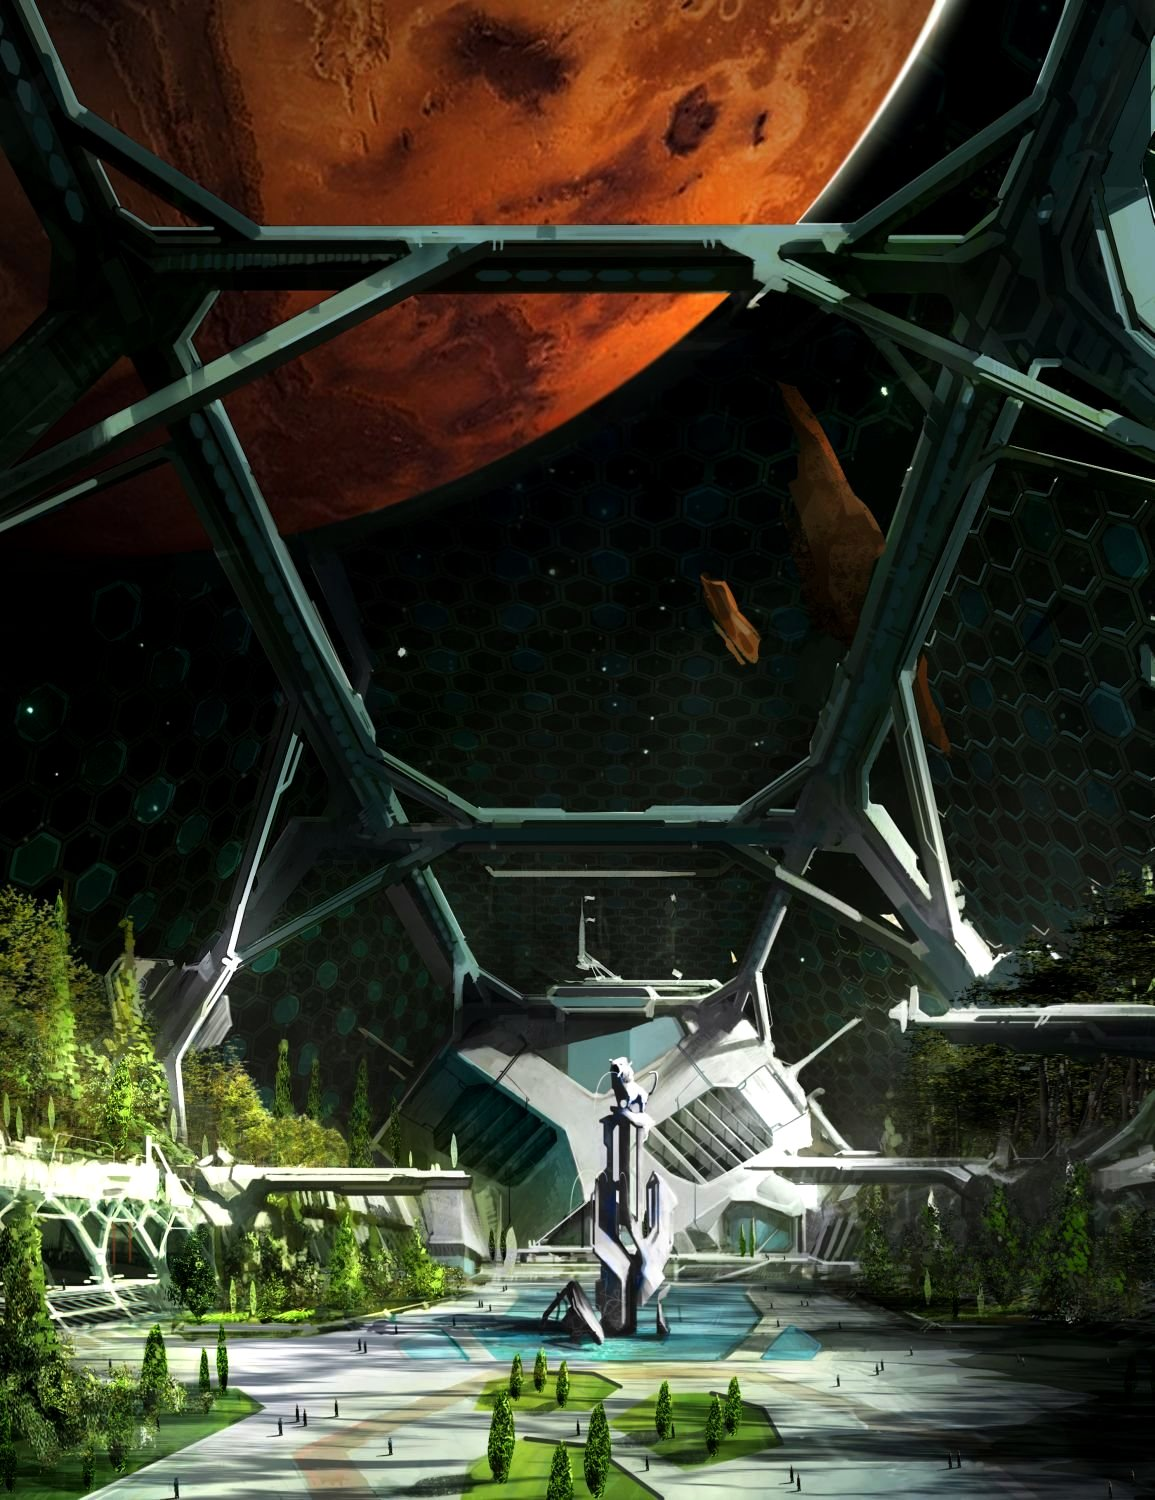 Domed park on a space station orbiting Mars by West Studio